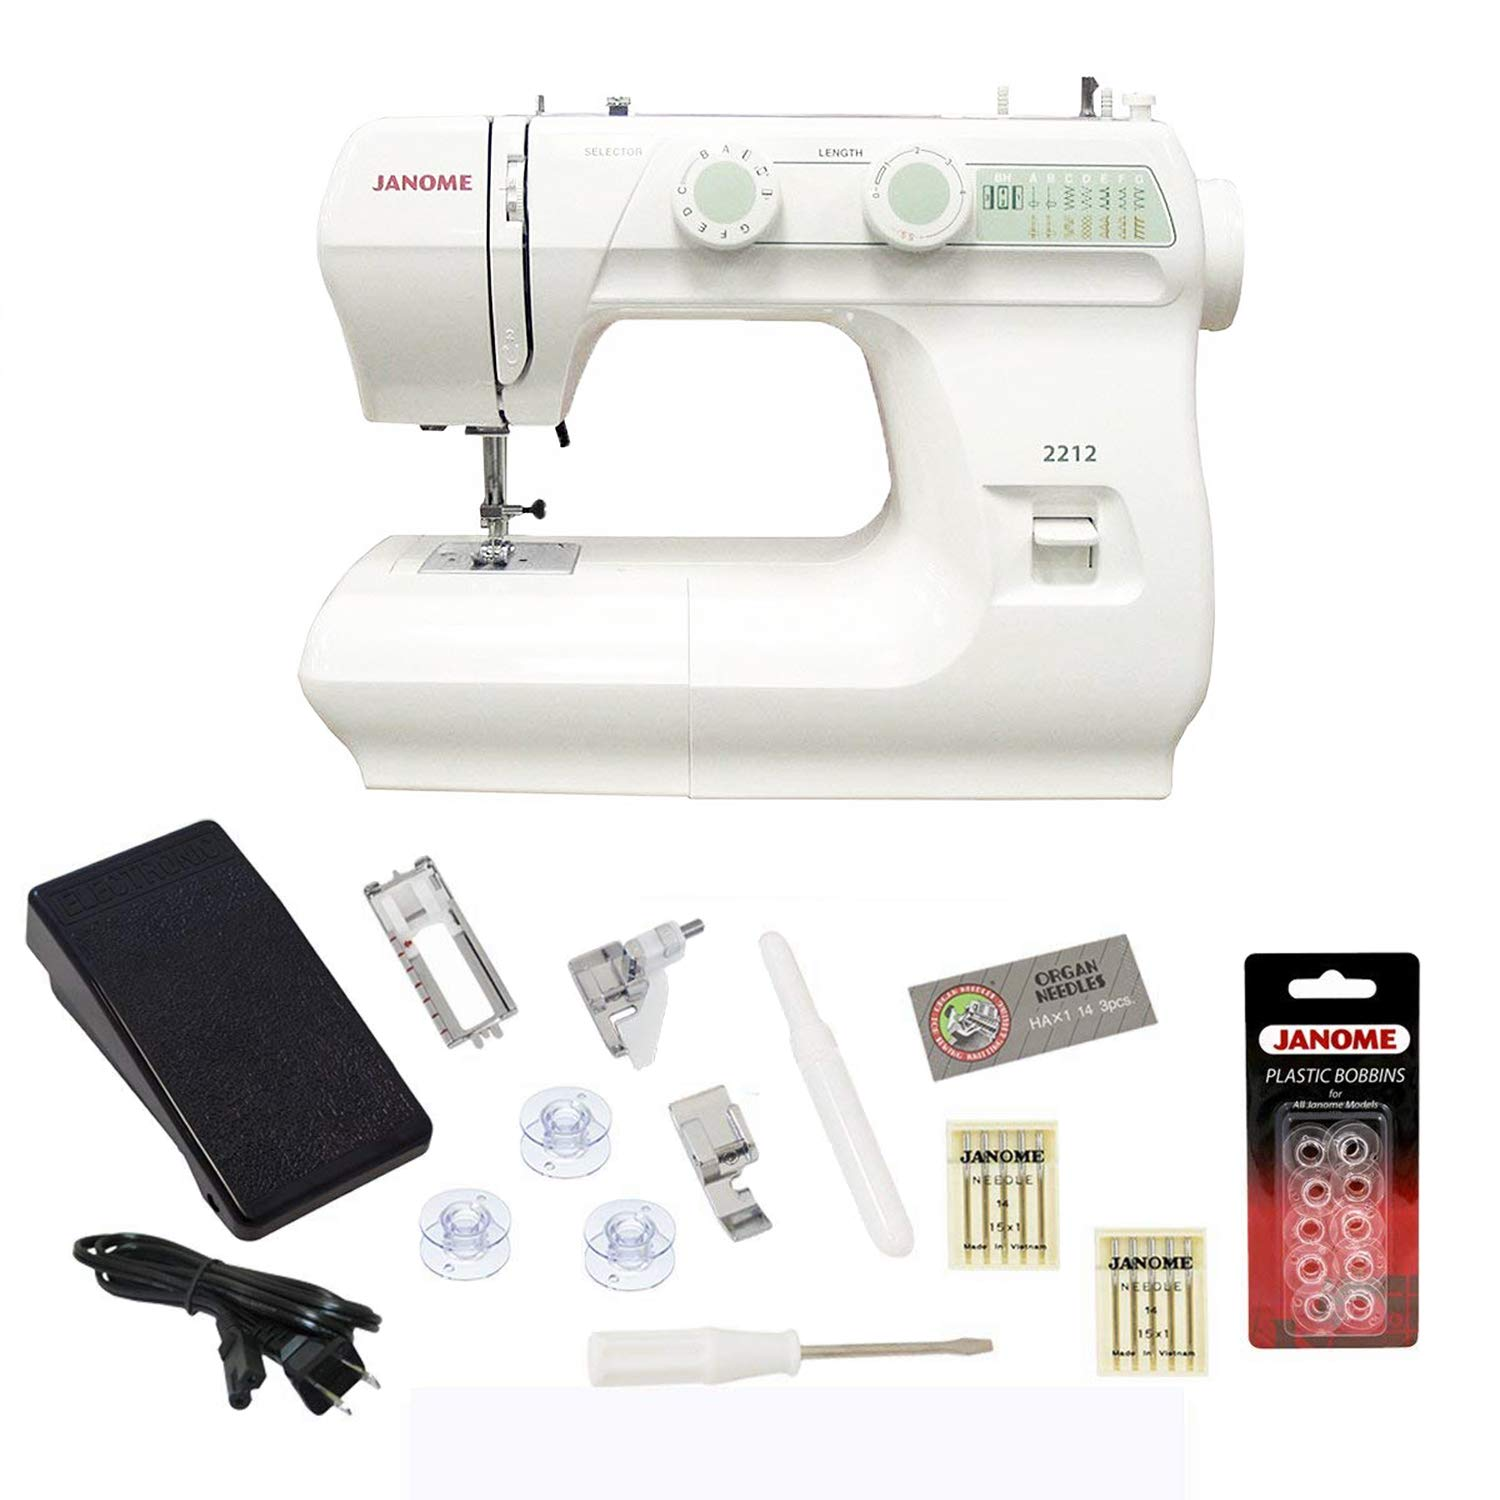 Janome Hd1000 Mechanical Sewing Machine W Free Bonus Package By